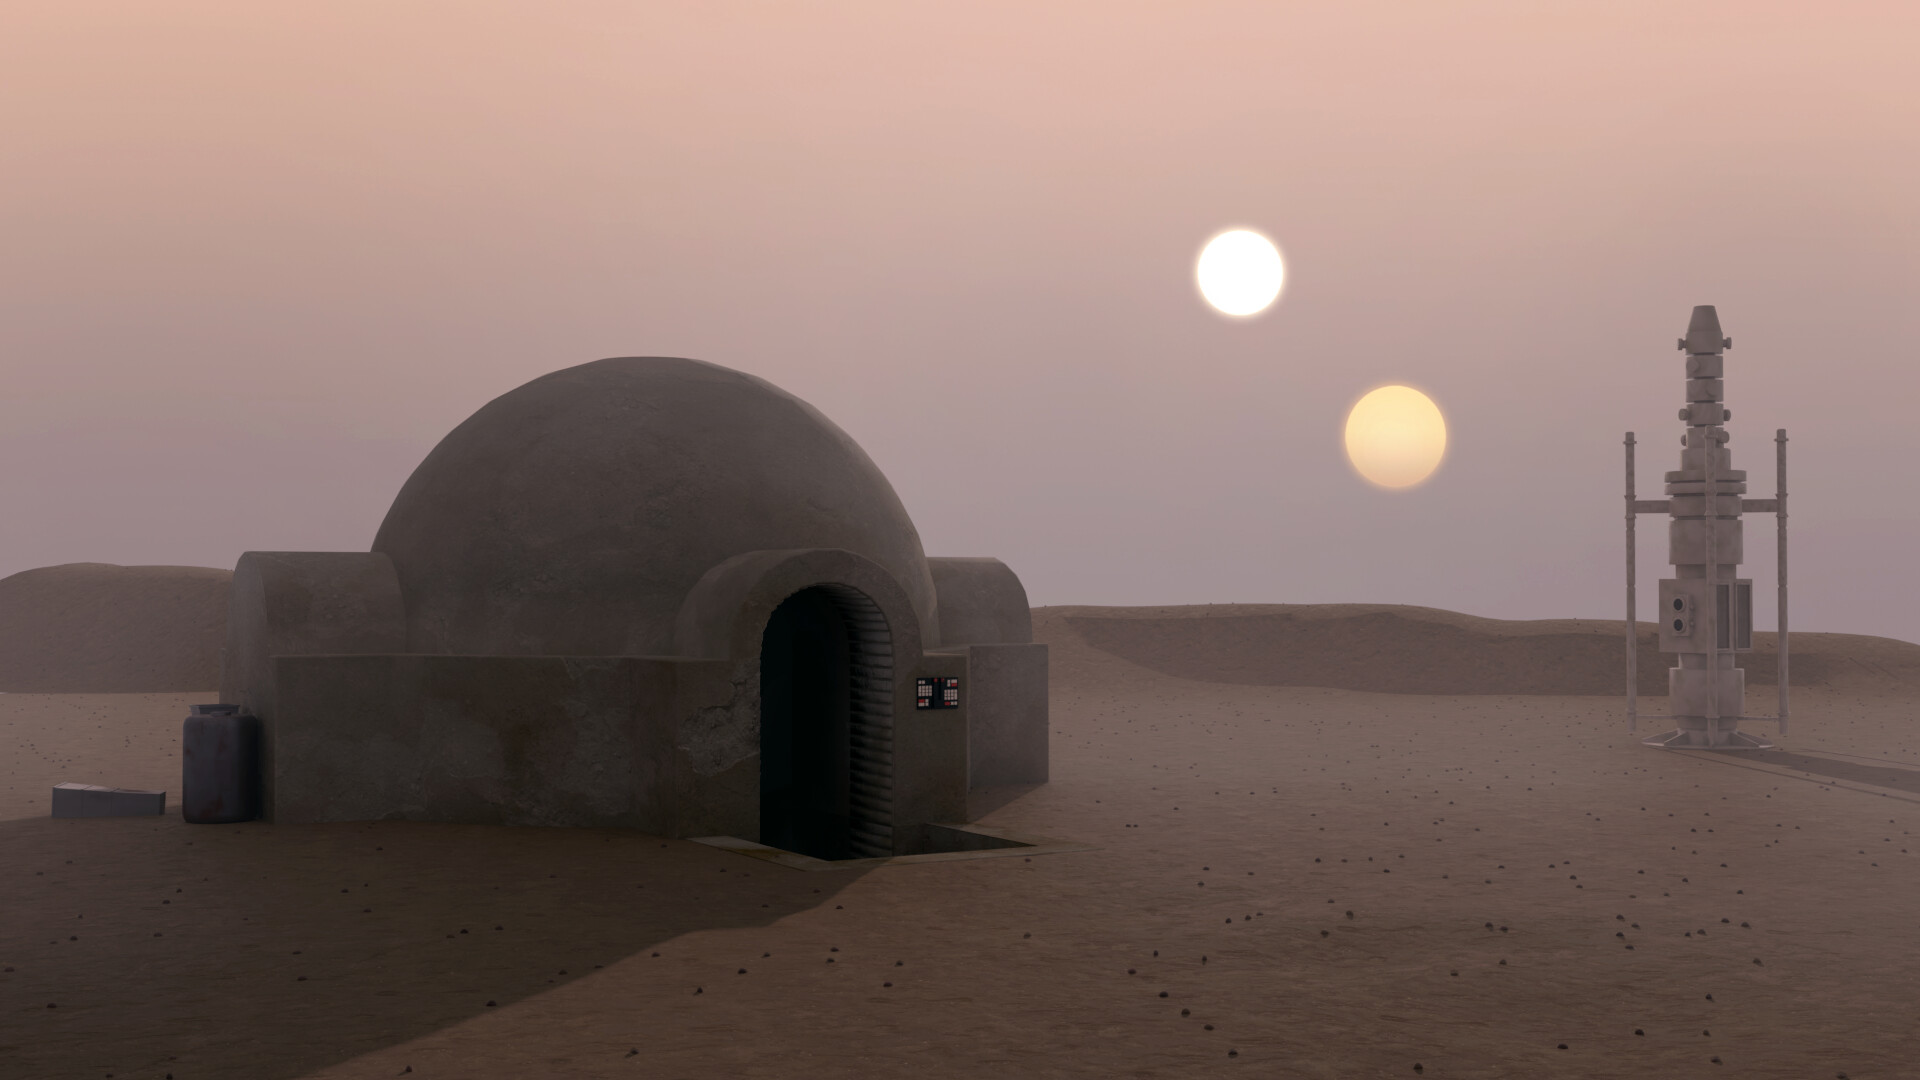 Star Wars the Lars homestead at Tatooine. Virtual background to use on Zoom, Microsoft Teams, Skype, Google Meet, WebEx or any other compatible app.